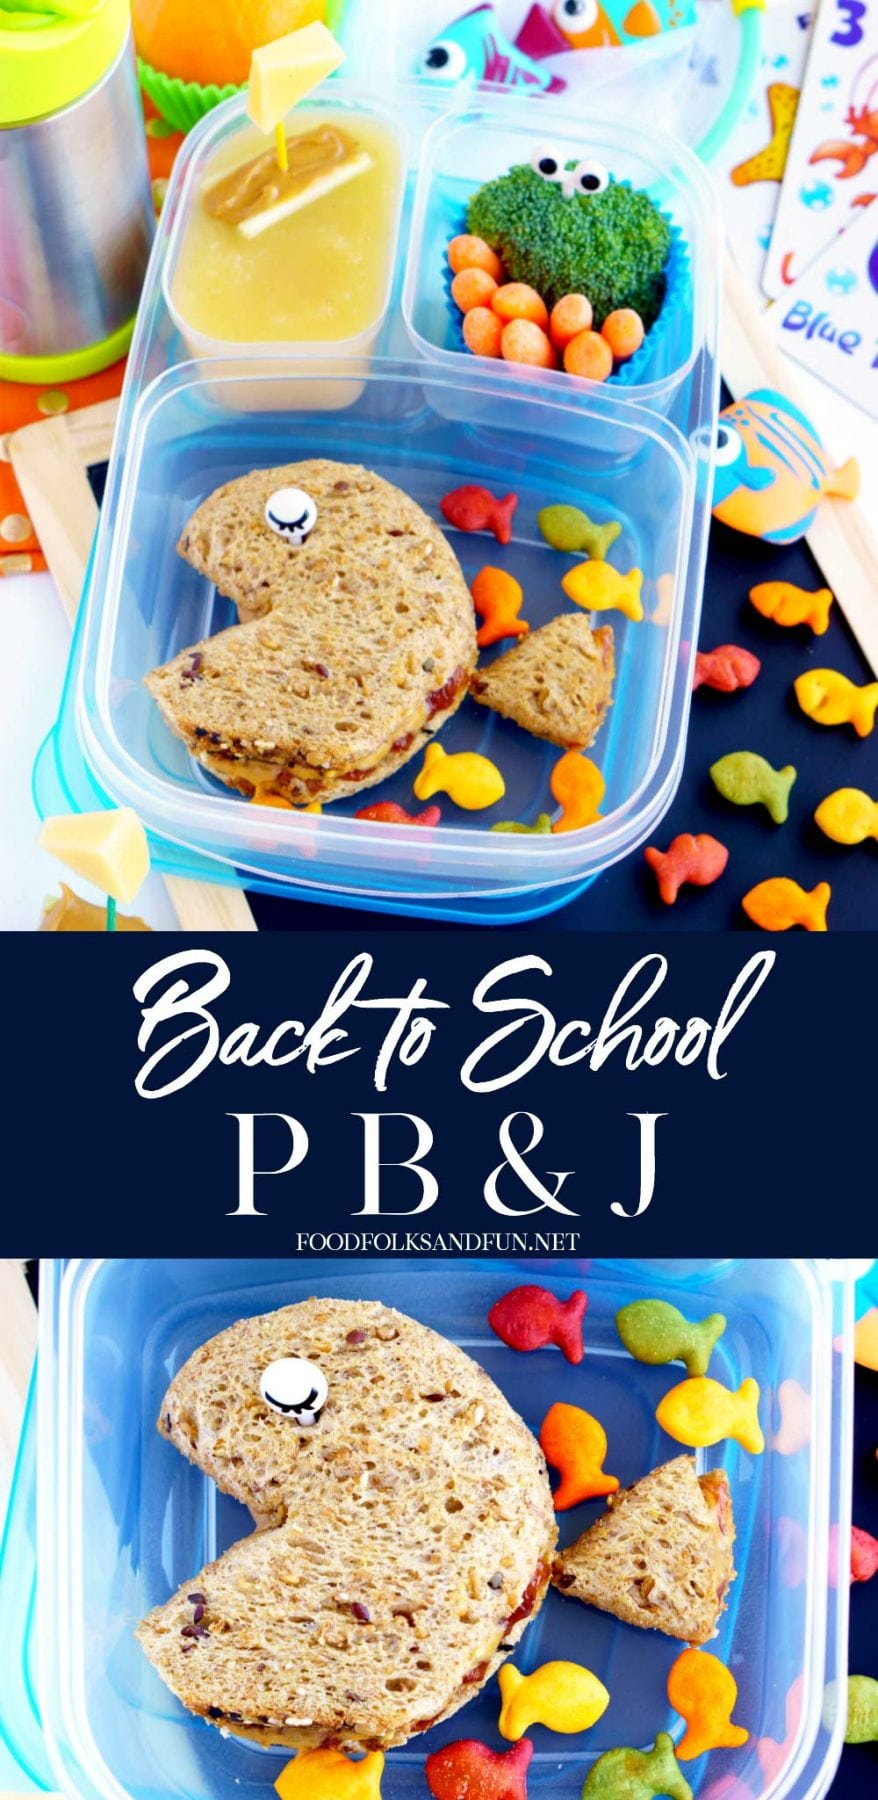 Your kids will love this Fish Cut-Out Back-to-School Peanut Butter and Jelly Sandwich at lunchtime. It's easy to prepare and so fun! via @foodfolksandfun